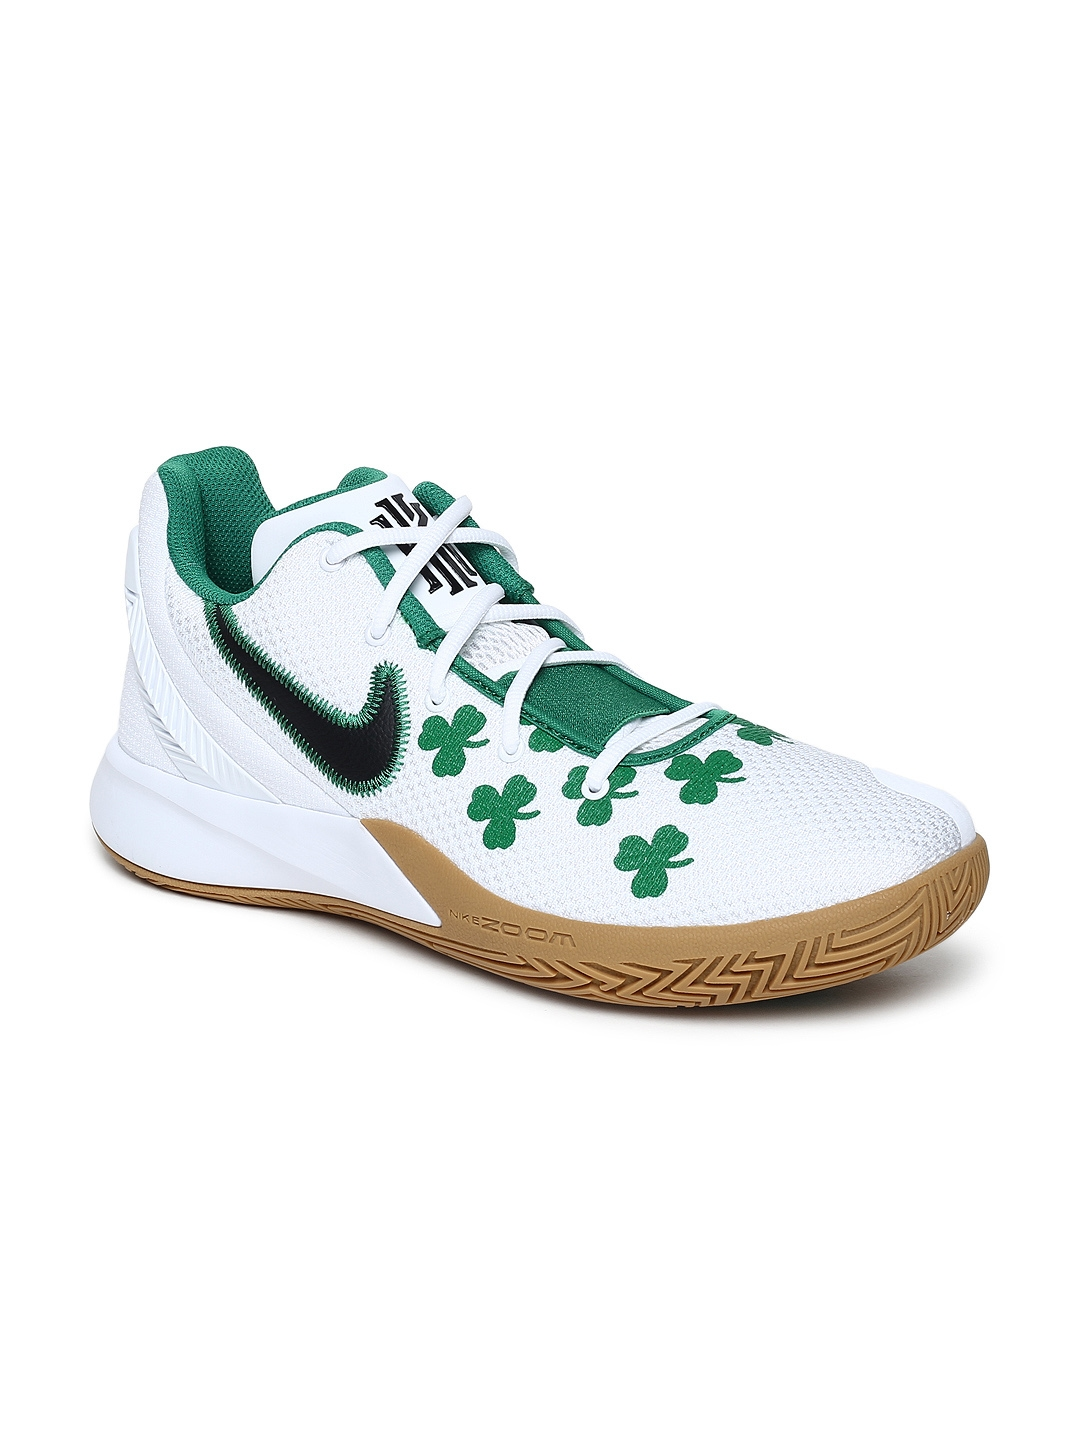 wholesale dealer eefbc 5aba6 Nike Men White & Green KYRIE FLYTRAP II EP BasketBall Shoes